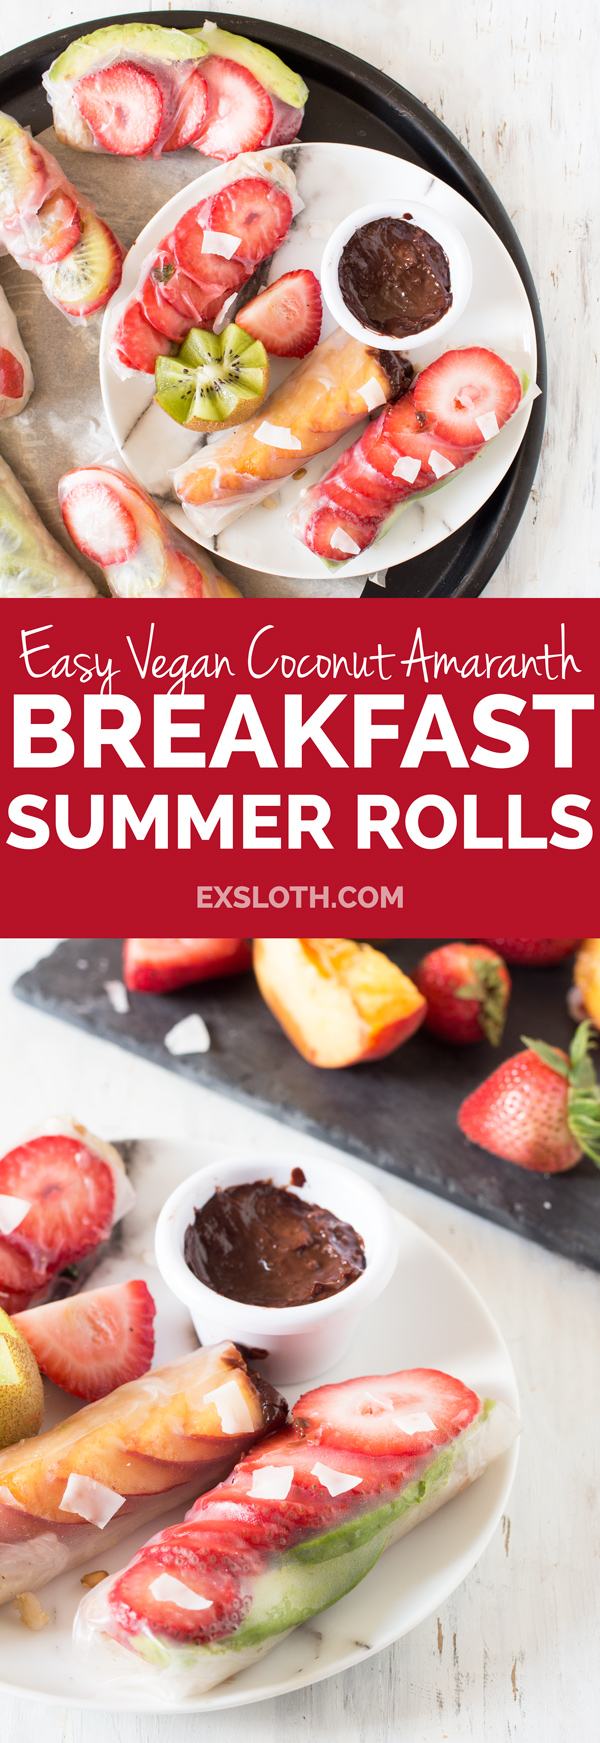 Easy Vegan Breakfast Summer Rolls (rice paper rolls or fresh spring rolls) via @ExSloth | ExSloth.com